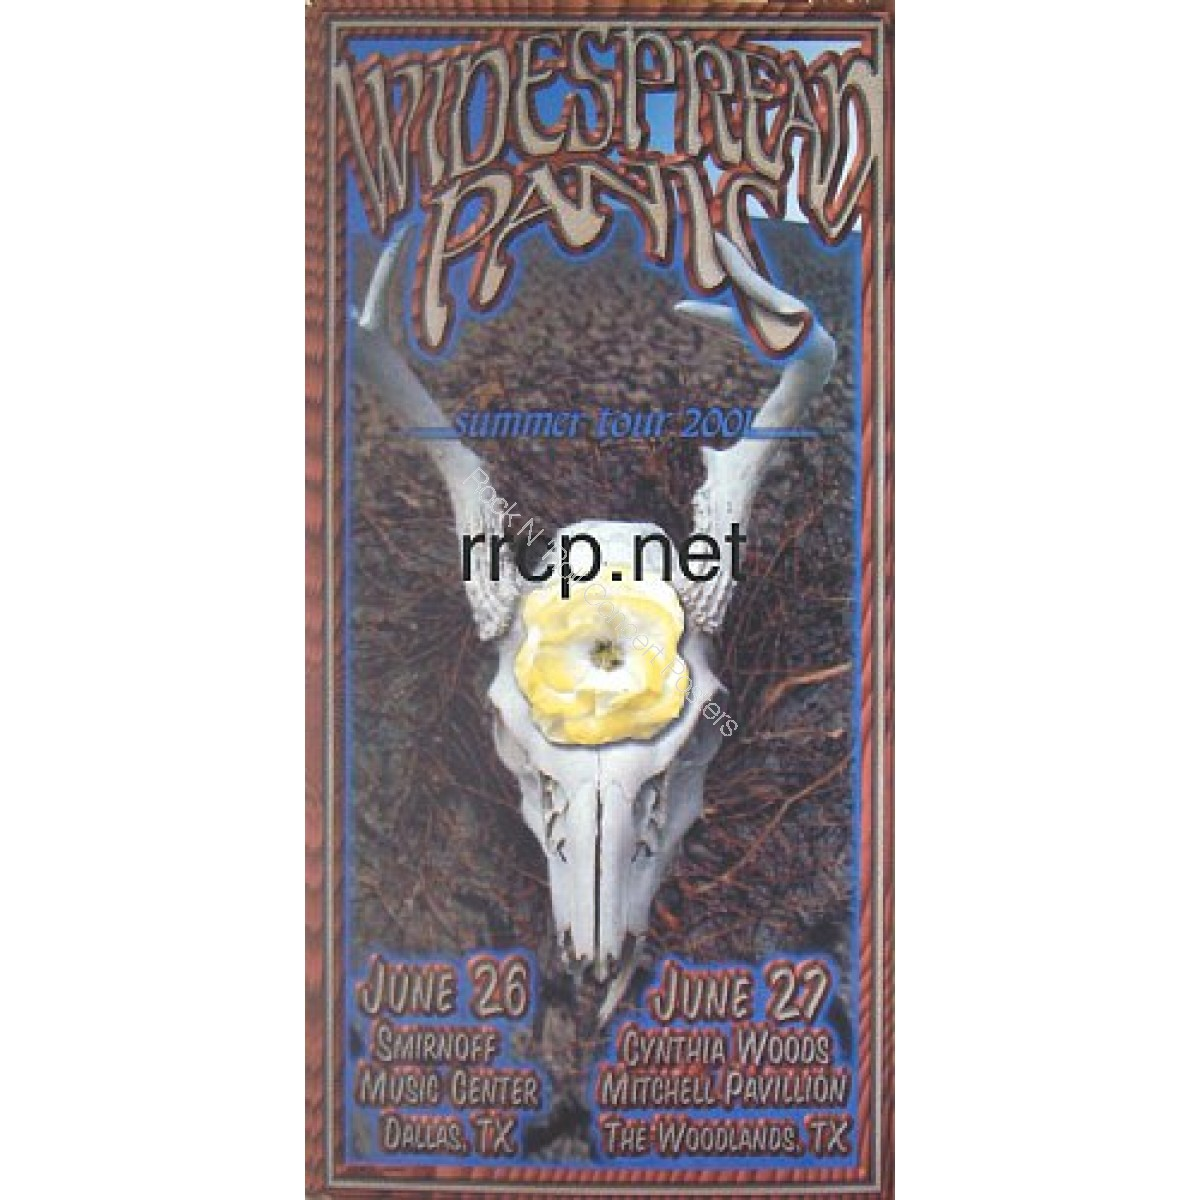 Widespread Panic Dallas, Houston  6/26-27/01